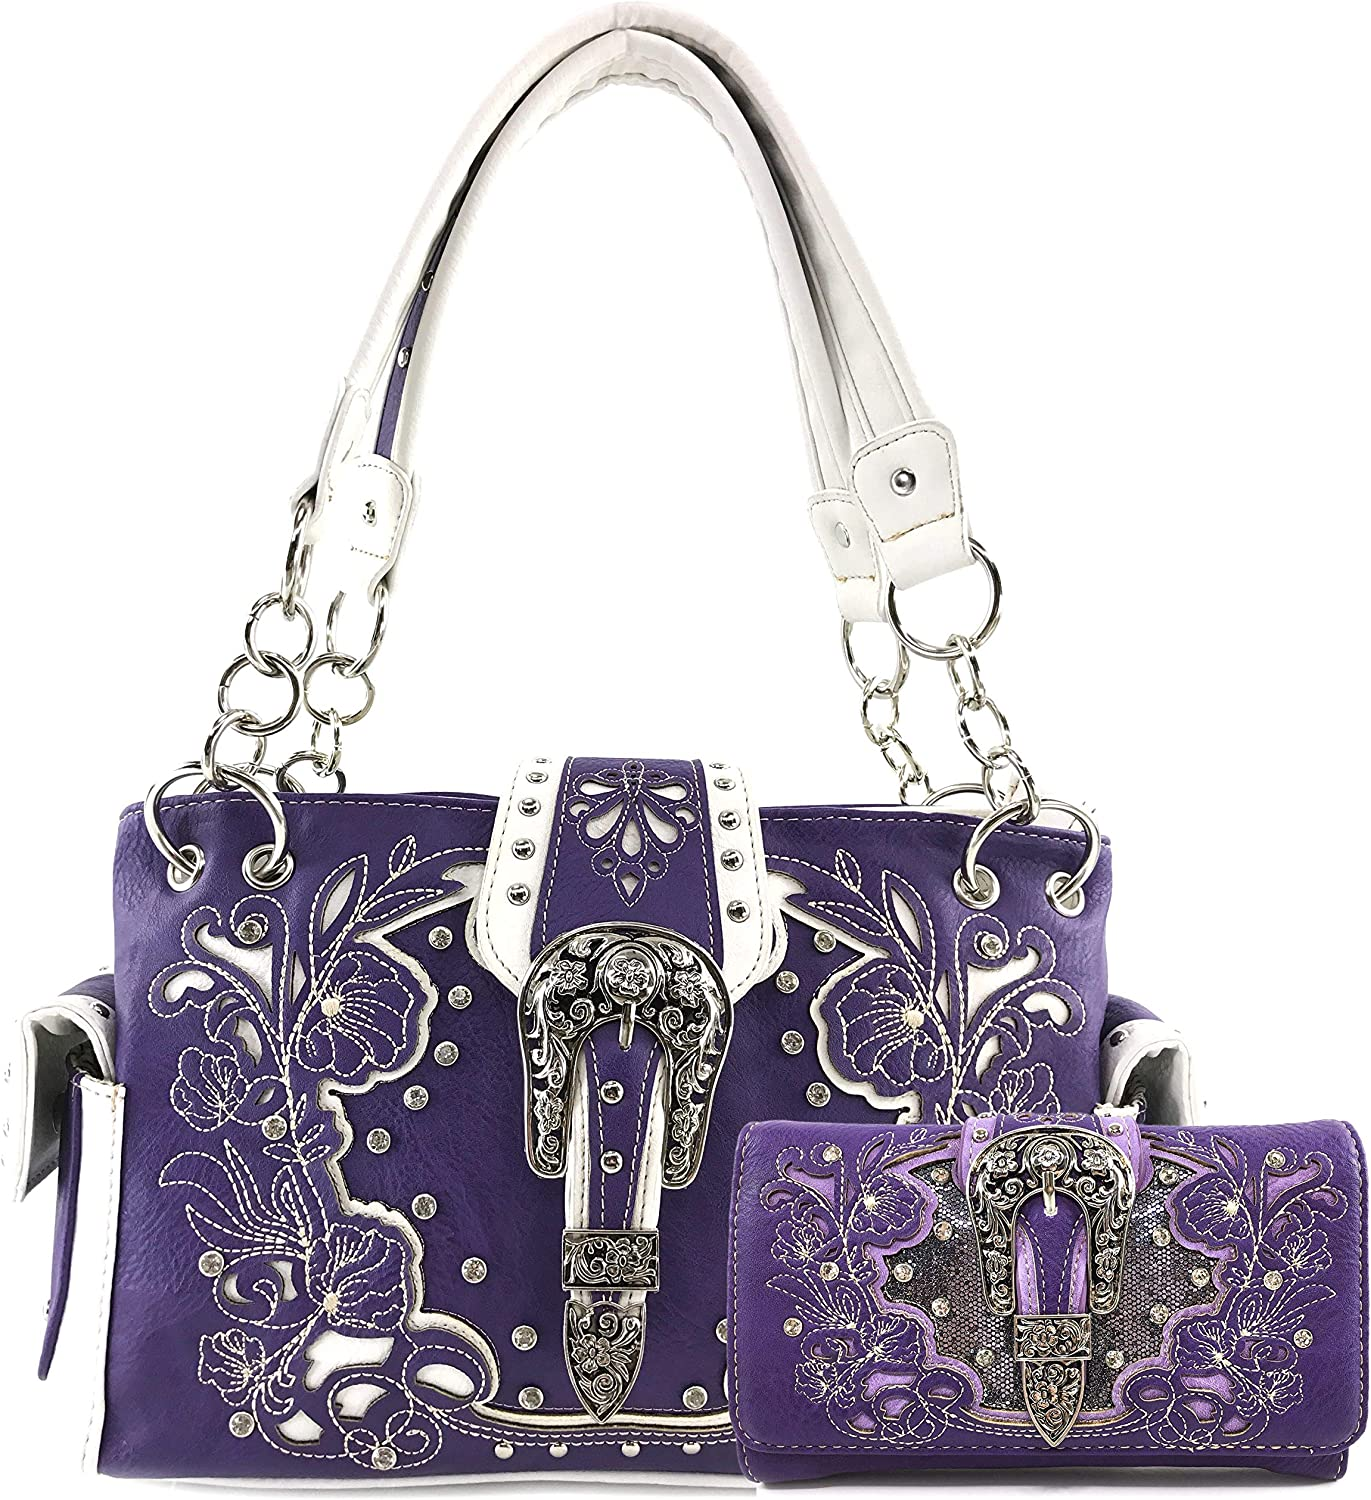 Zelris Western Floral Blossom Buckle Handbag 正規激安 新作アイテム毎日更新 Conceal Carry Women